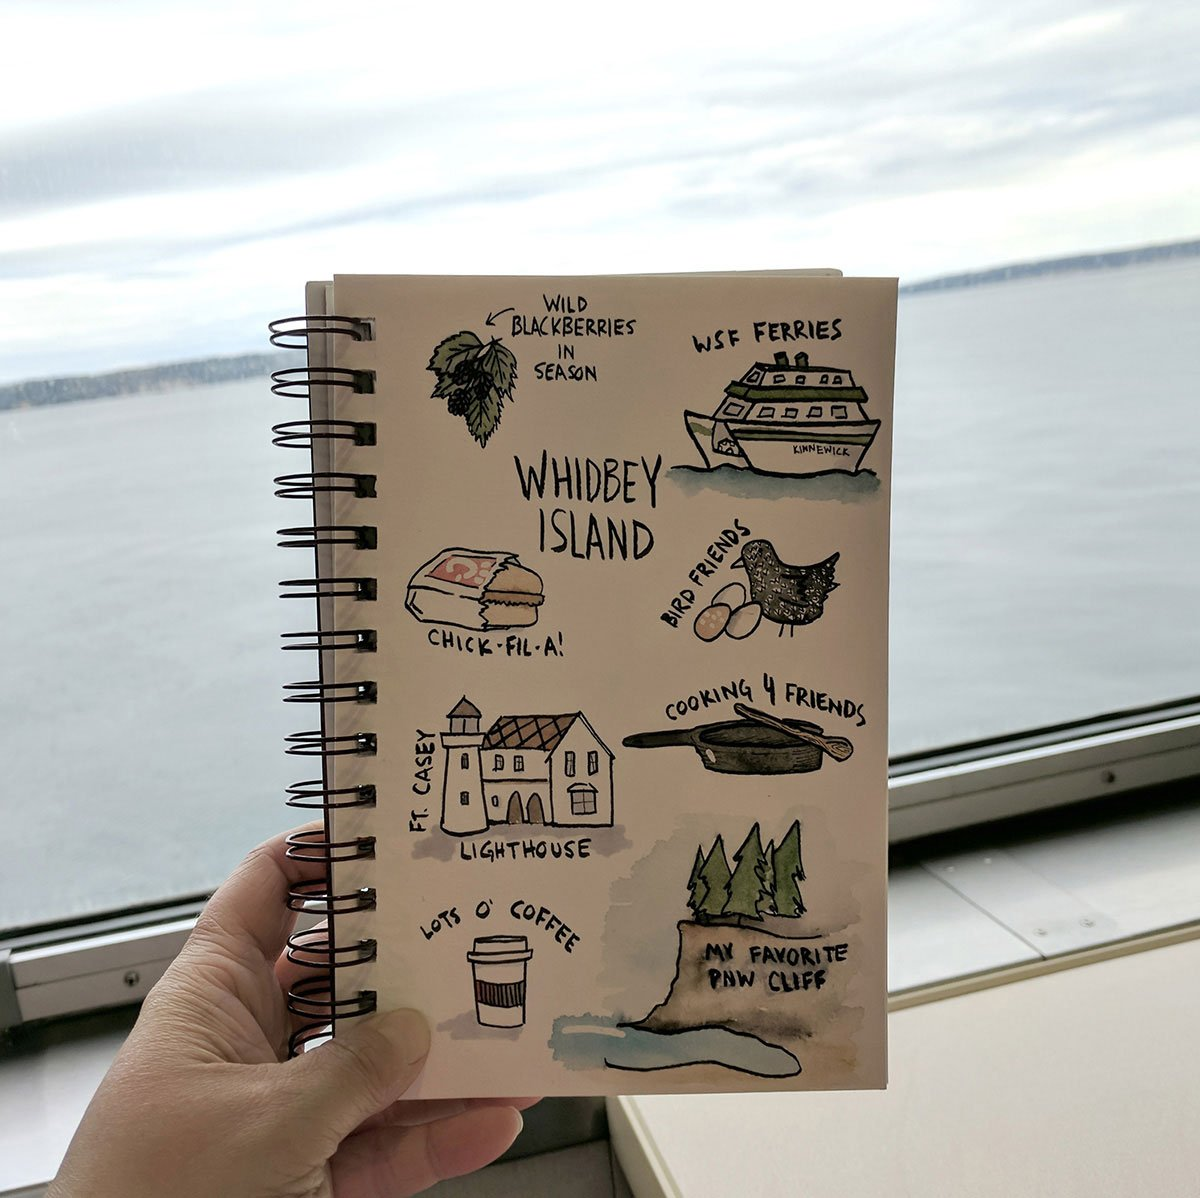 Hh travel whidbey island 1